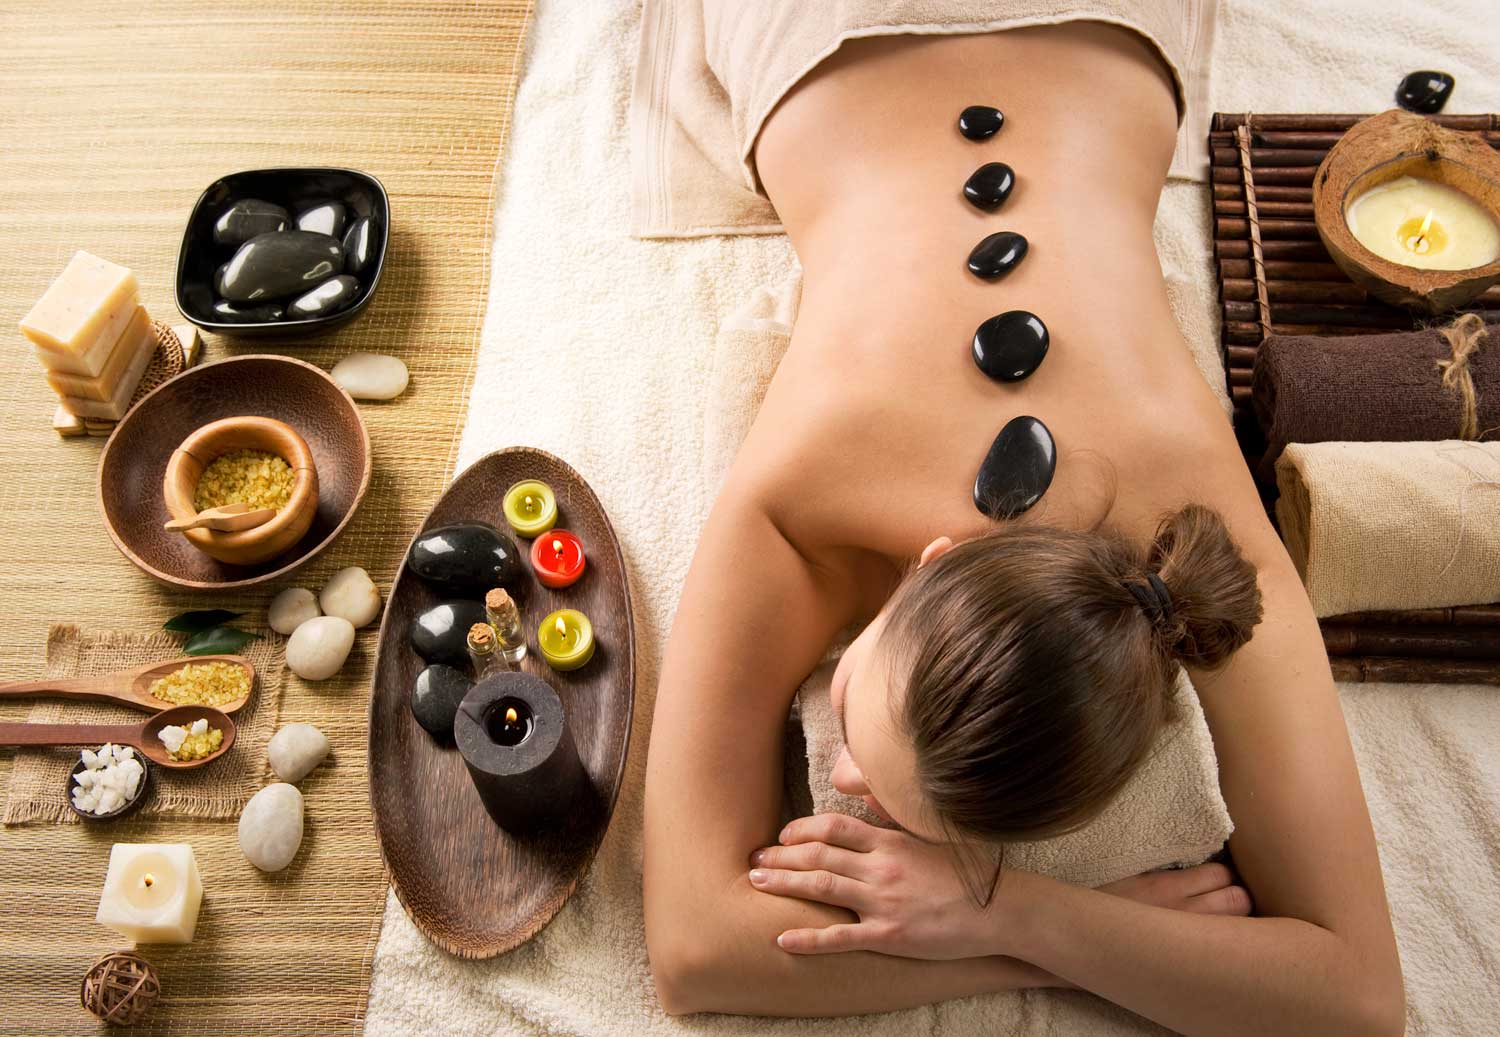 Hot stone massage is being performed on a female client in a spa setting